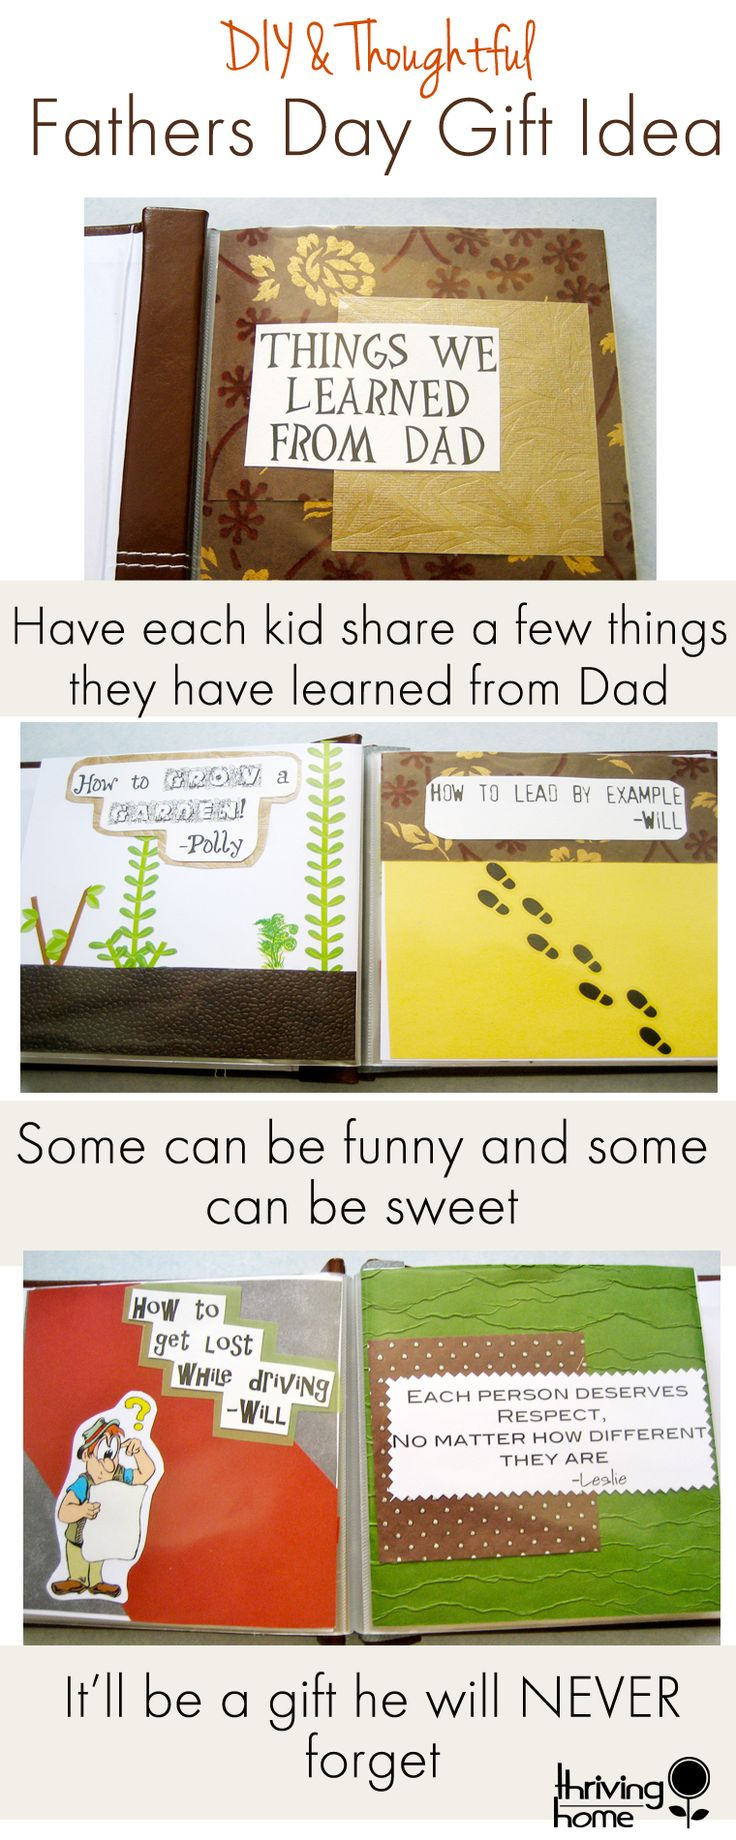 This is one of the best Father's Day gifts: Put together a list of things ea...